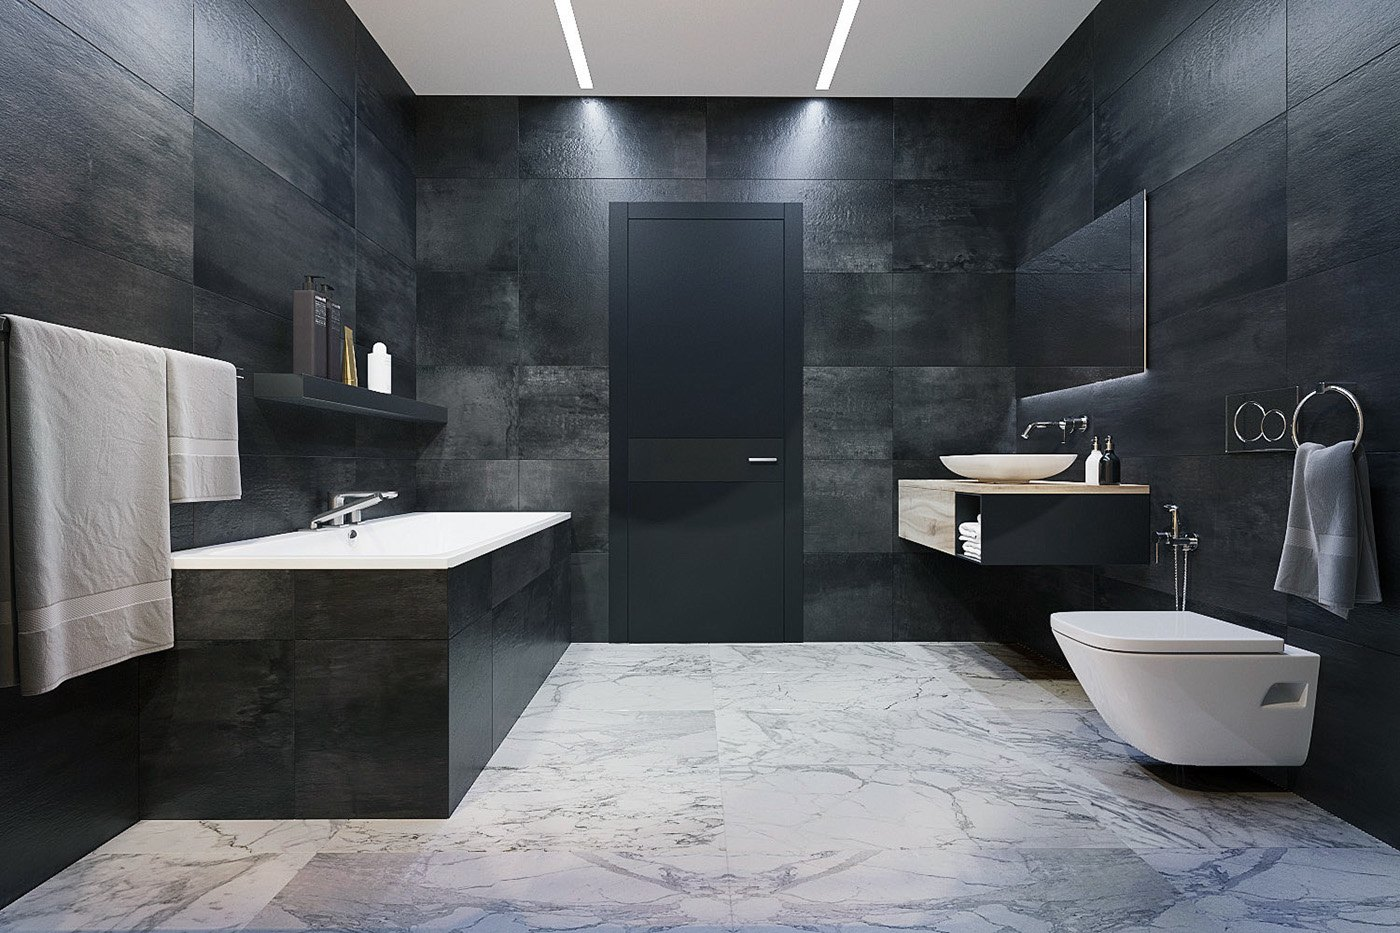 Minimalist Bathroom Decor Which Arranged With Variety Of